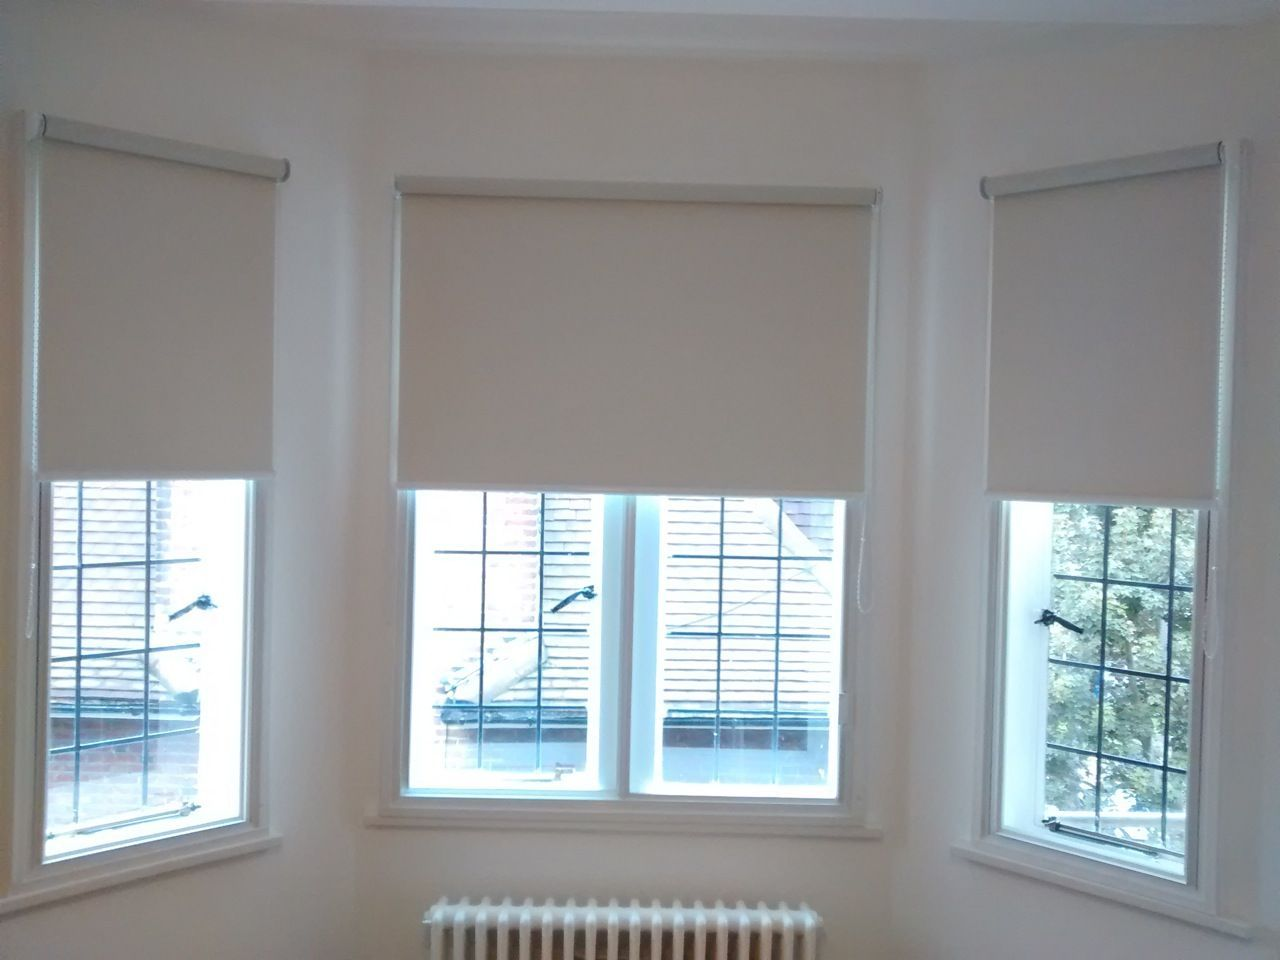 Window blinds ideas  blackout roller blinds fitted to a bay window  my favorite shades